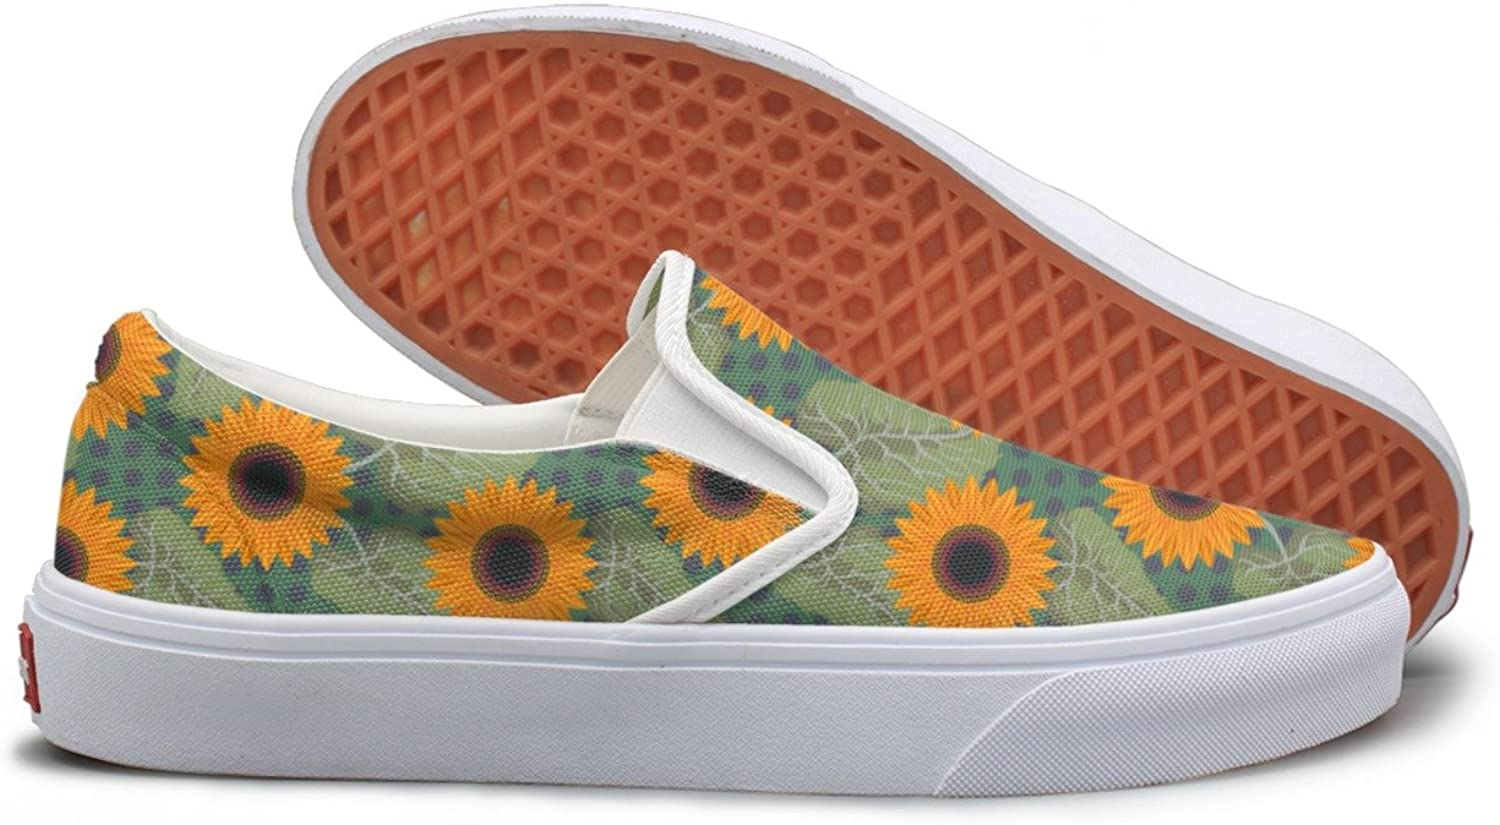 Hjkggd fgfds Casual Graphic Sunflowers Near Me Pretty Women Canvas Sneakers shoes